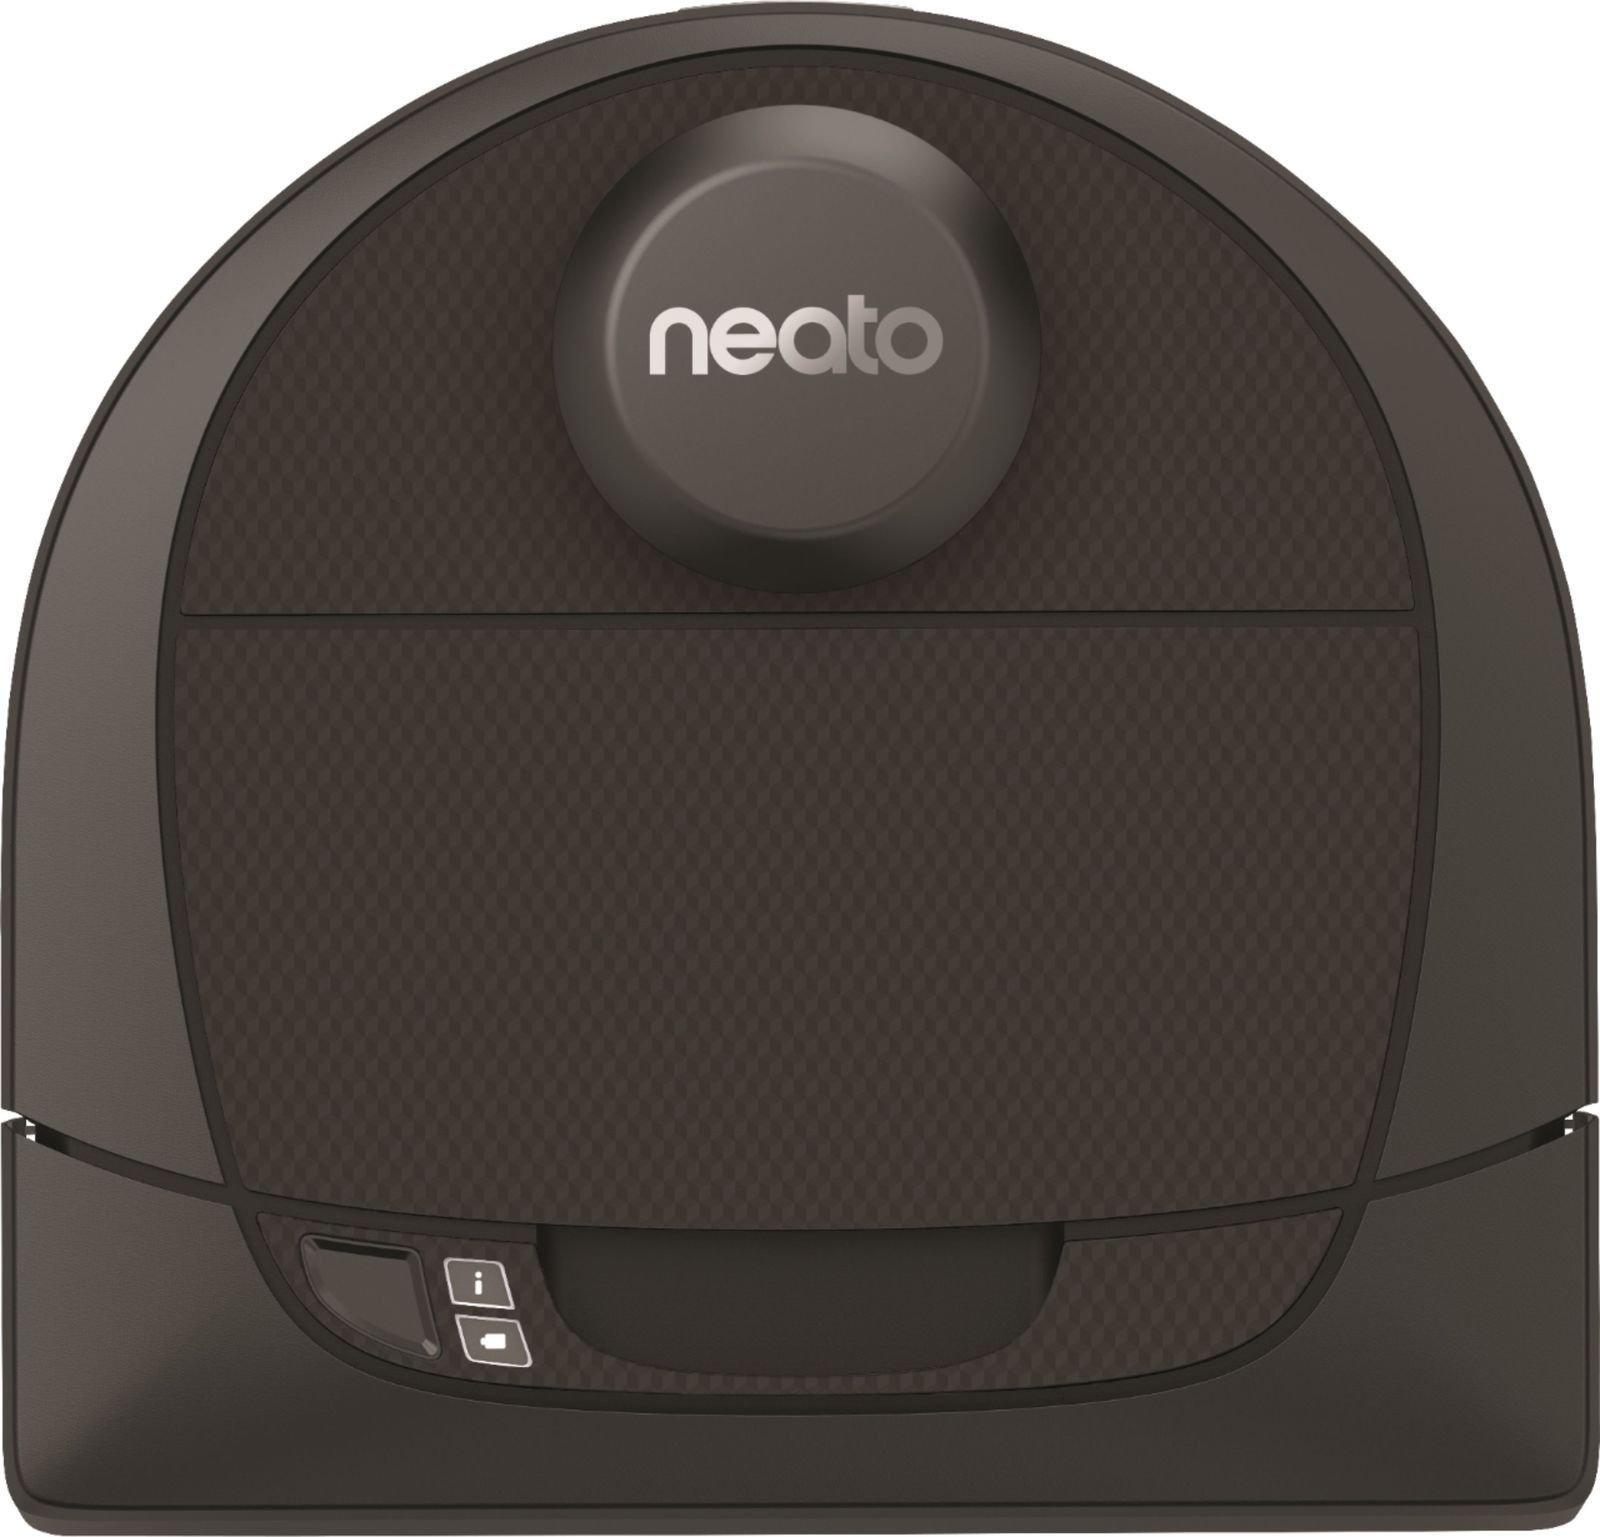 Image for Neato Robotics - Neato Botvac D4 Connected App-Controlled Robot Vacuum - Black from Circuit City